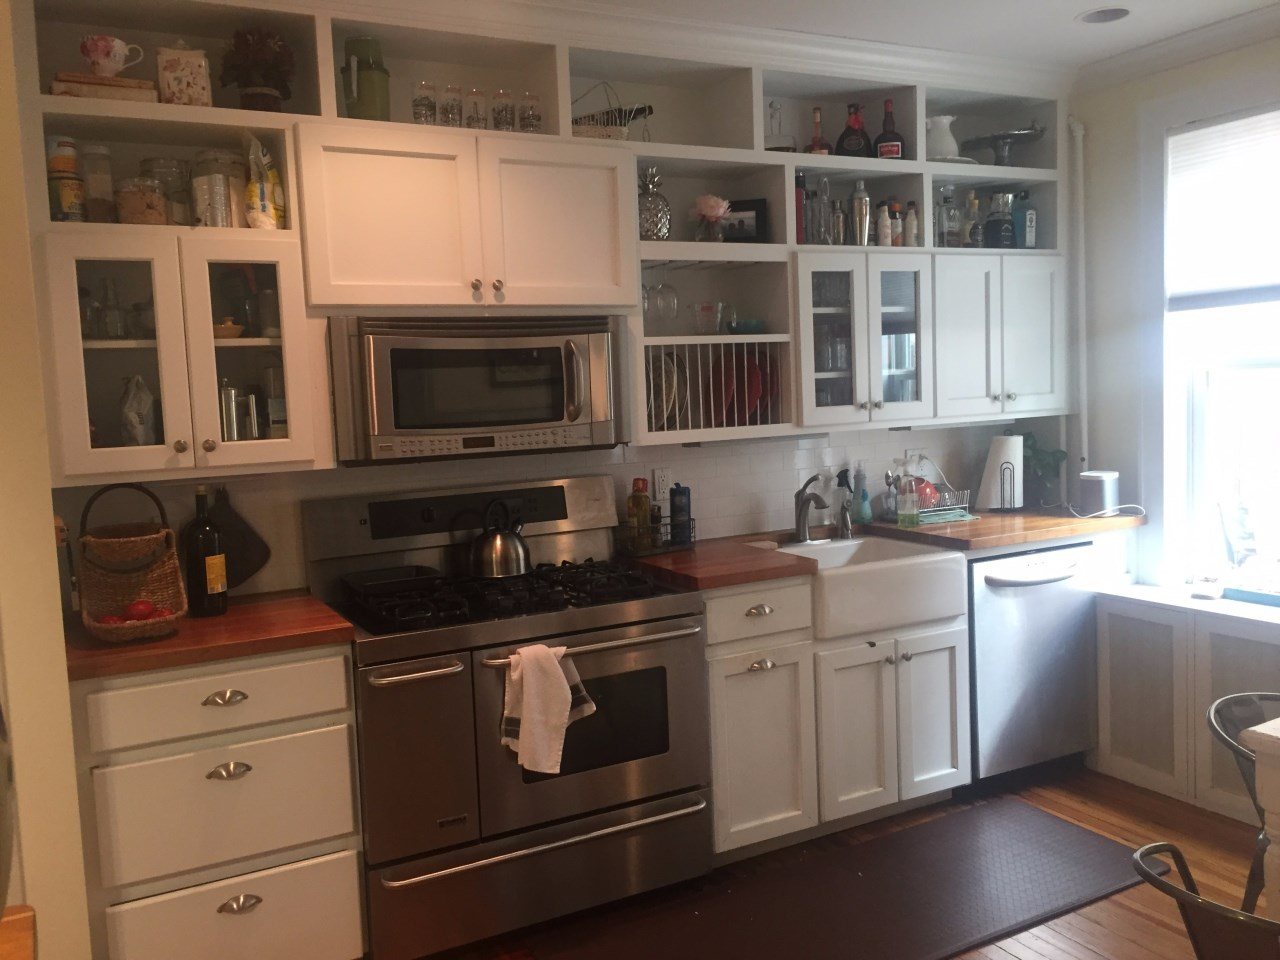 Historic District Brownstone Remodel Project In Process History Revitalized Kitchen Before 02